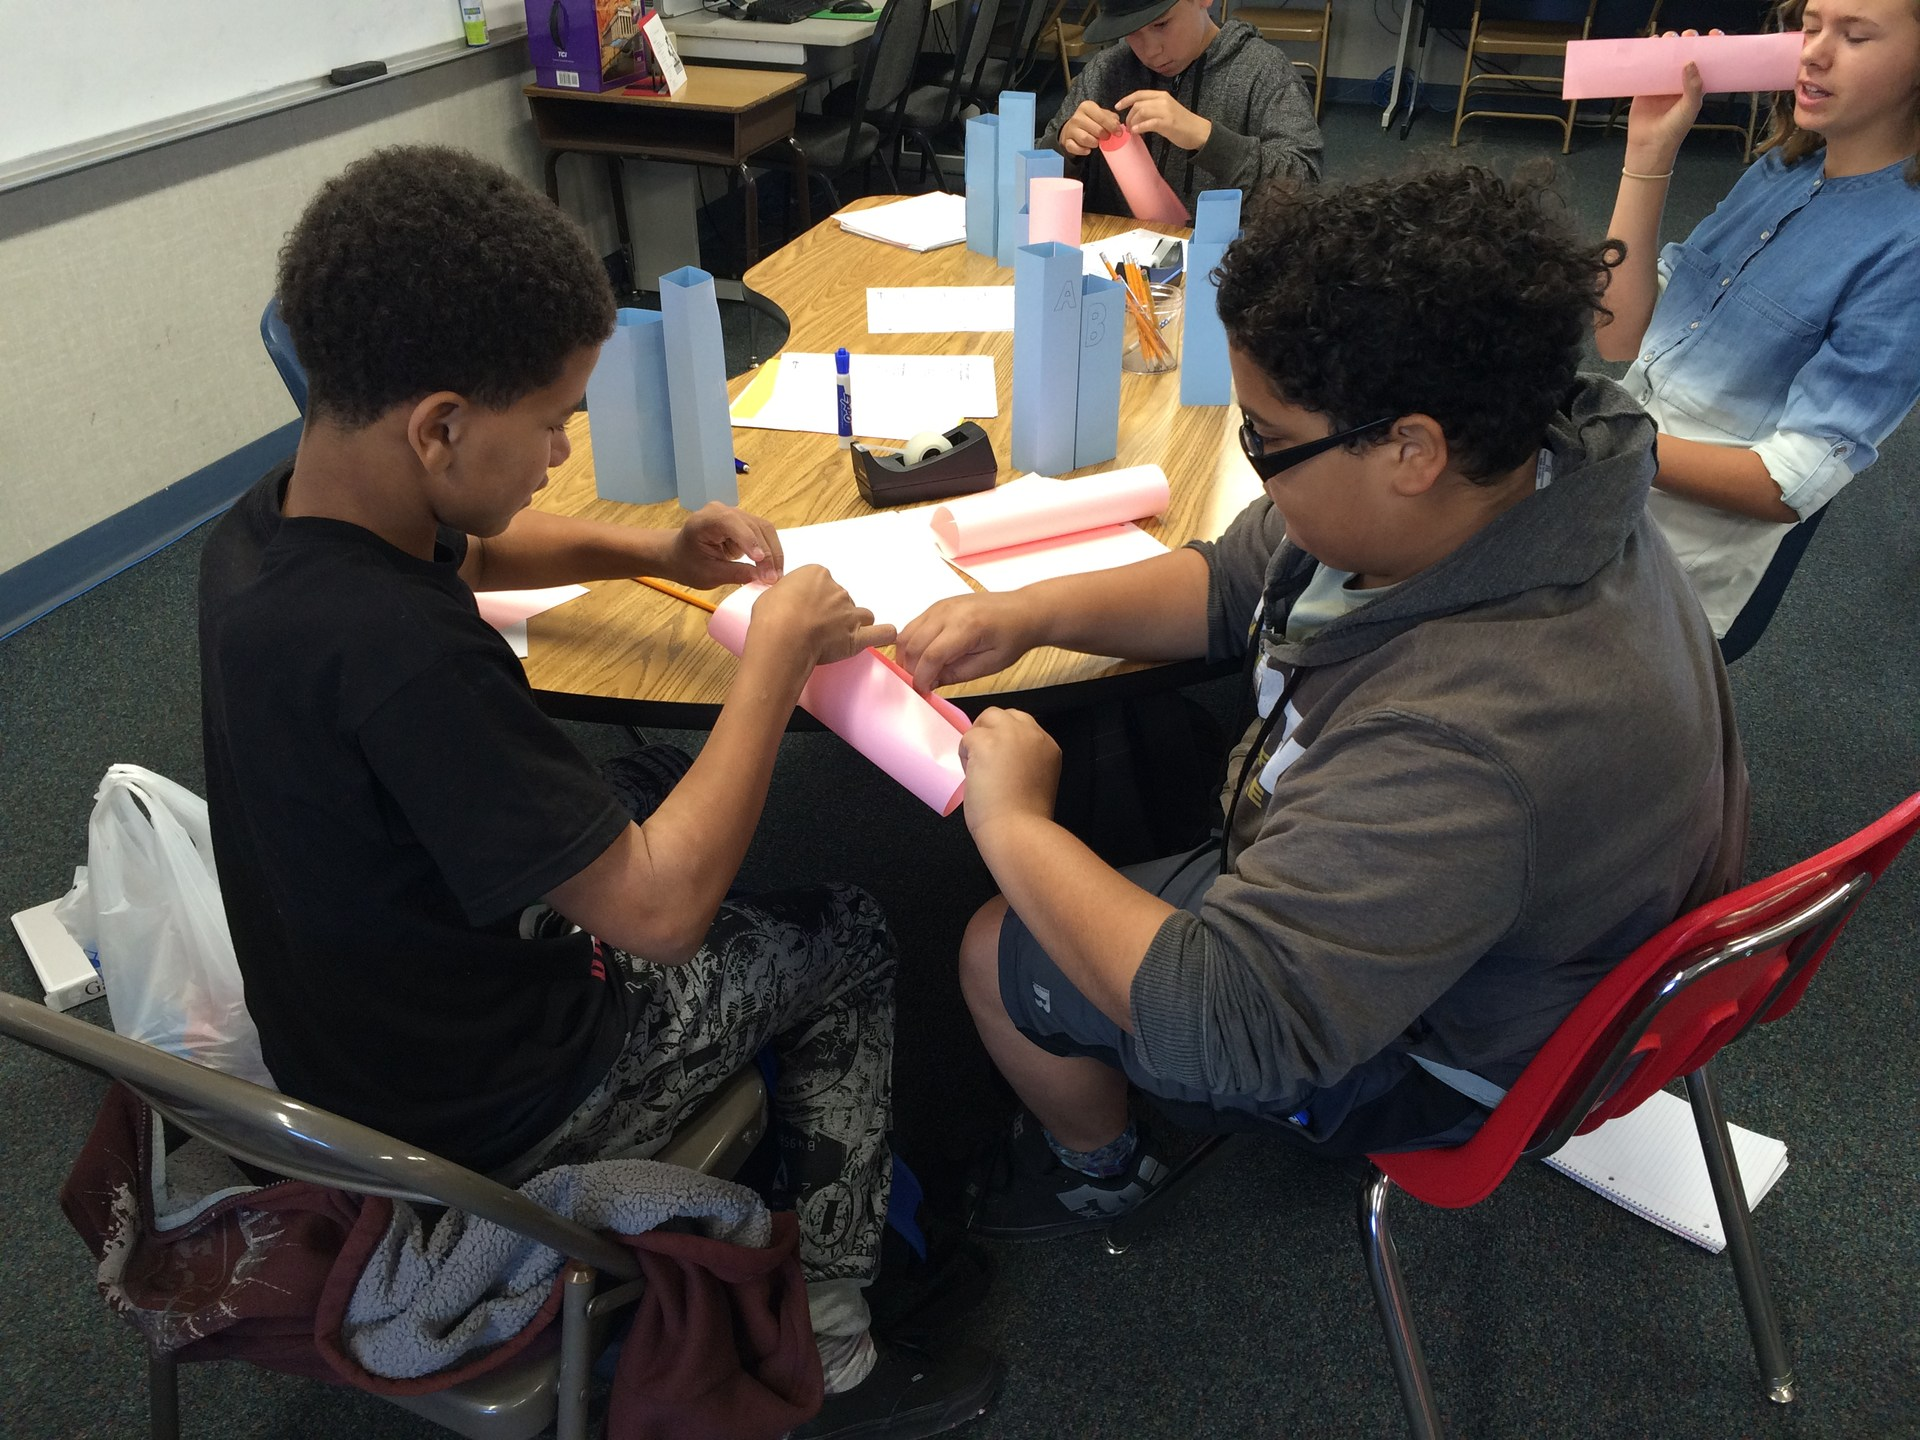 Students helping each other with math project.